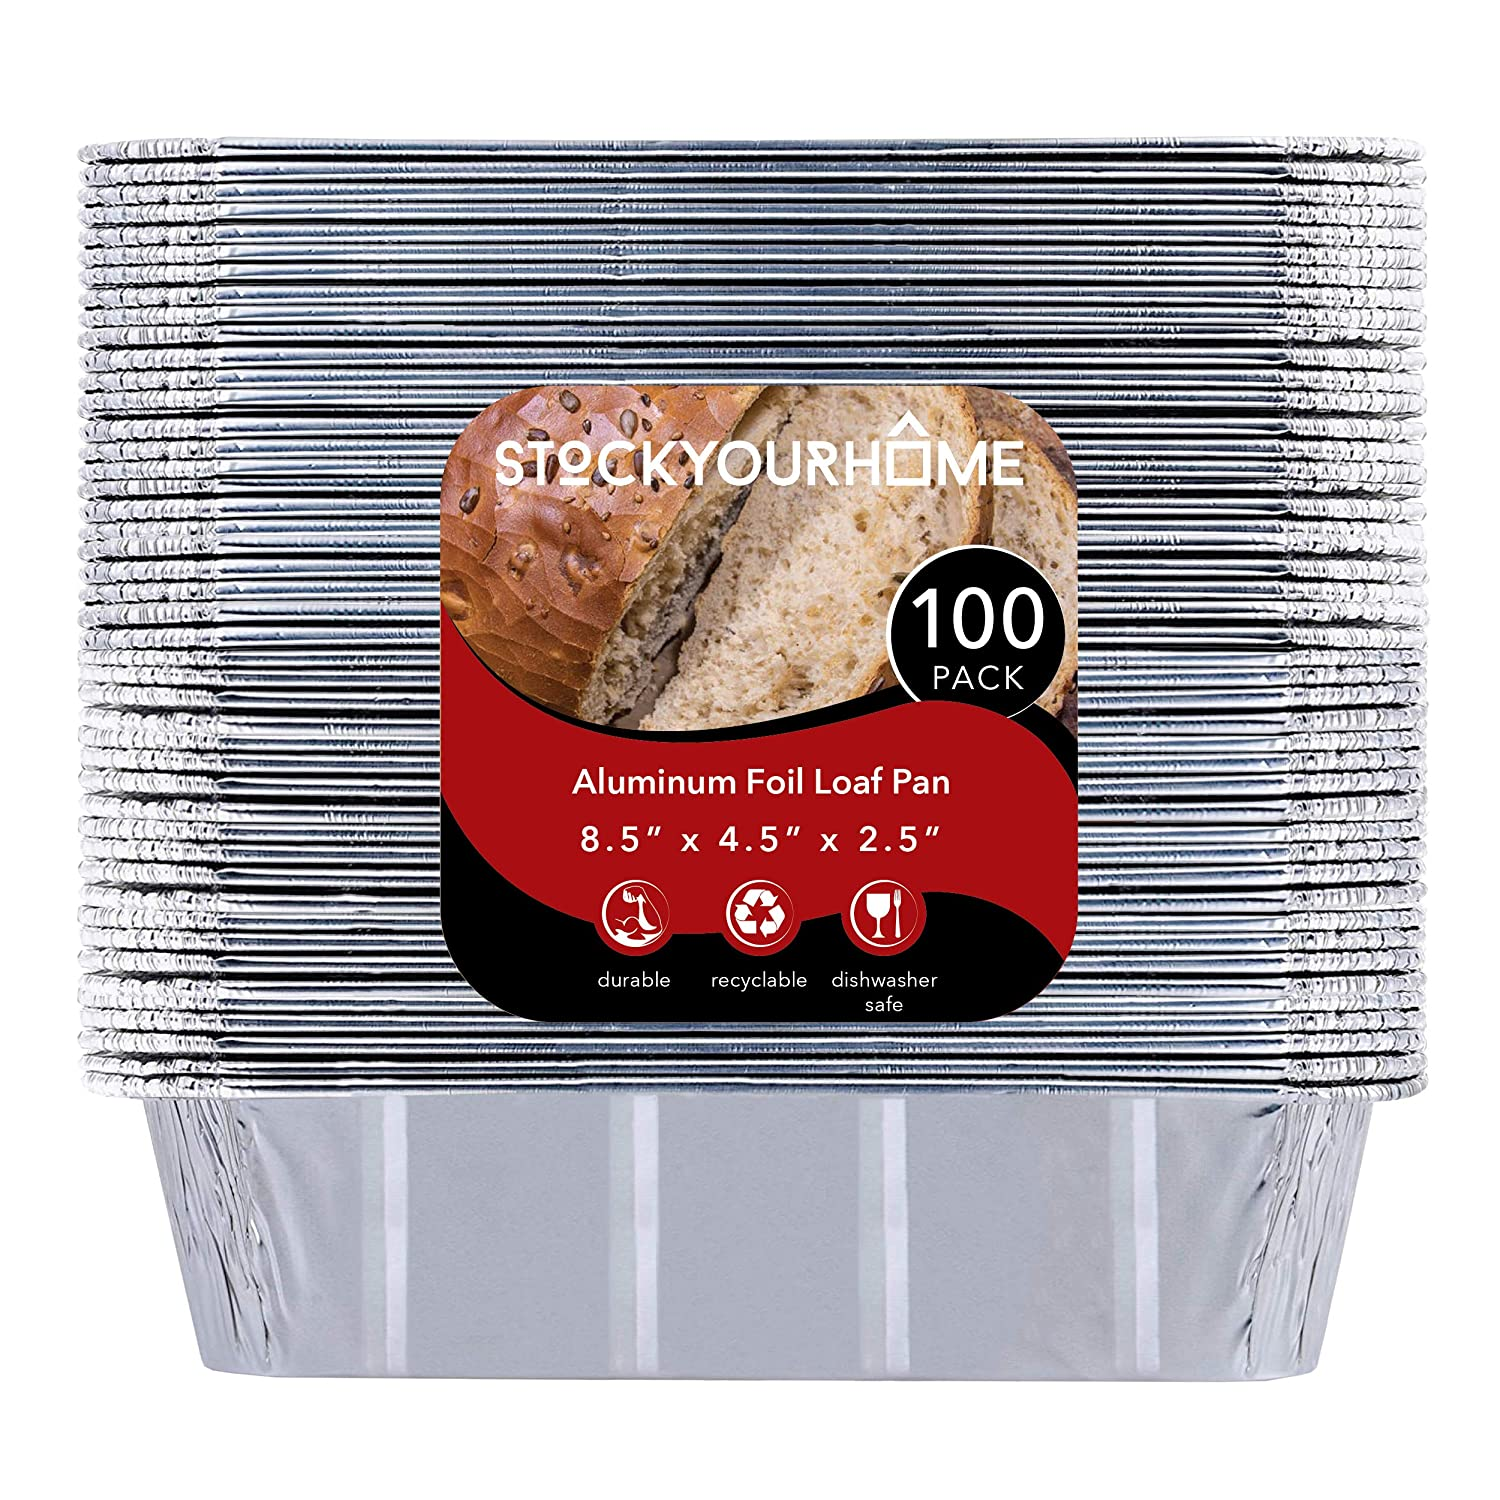 "2 lb Aluminum Foil Loaf Pans (100 Pack) - Disposable Standard Size Bread & Meatloaf Pan Great for Restaurant, Party, BBQ, Catering, Baking, Cooking, Heating, Storing Food – 8.5"" x 4.5"" x 2.5"""